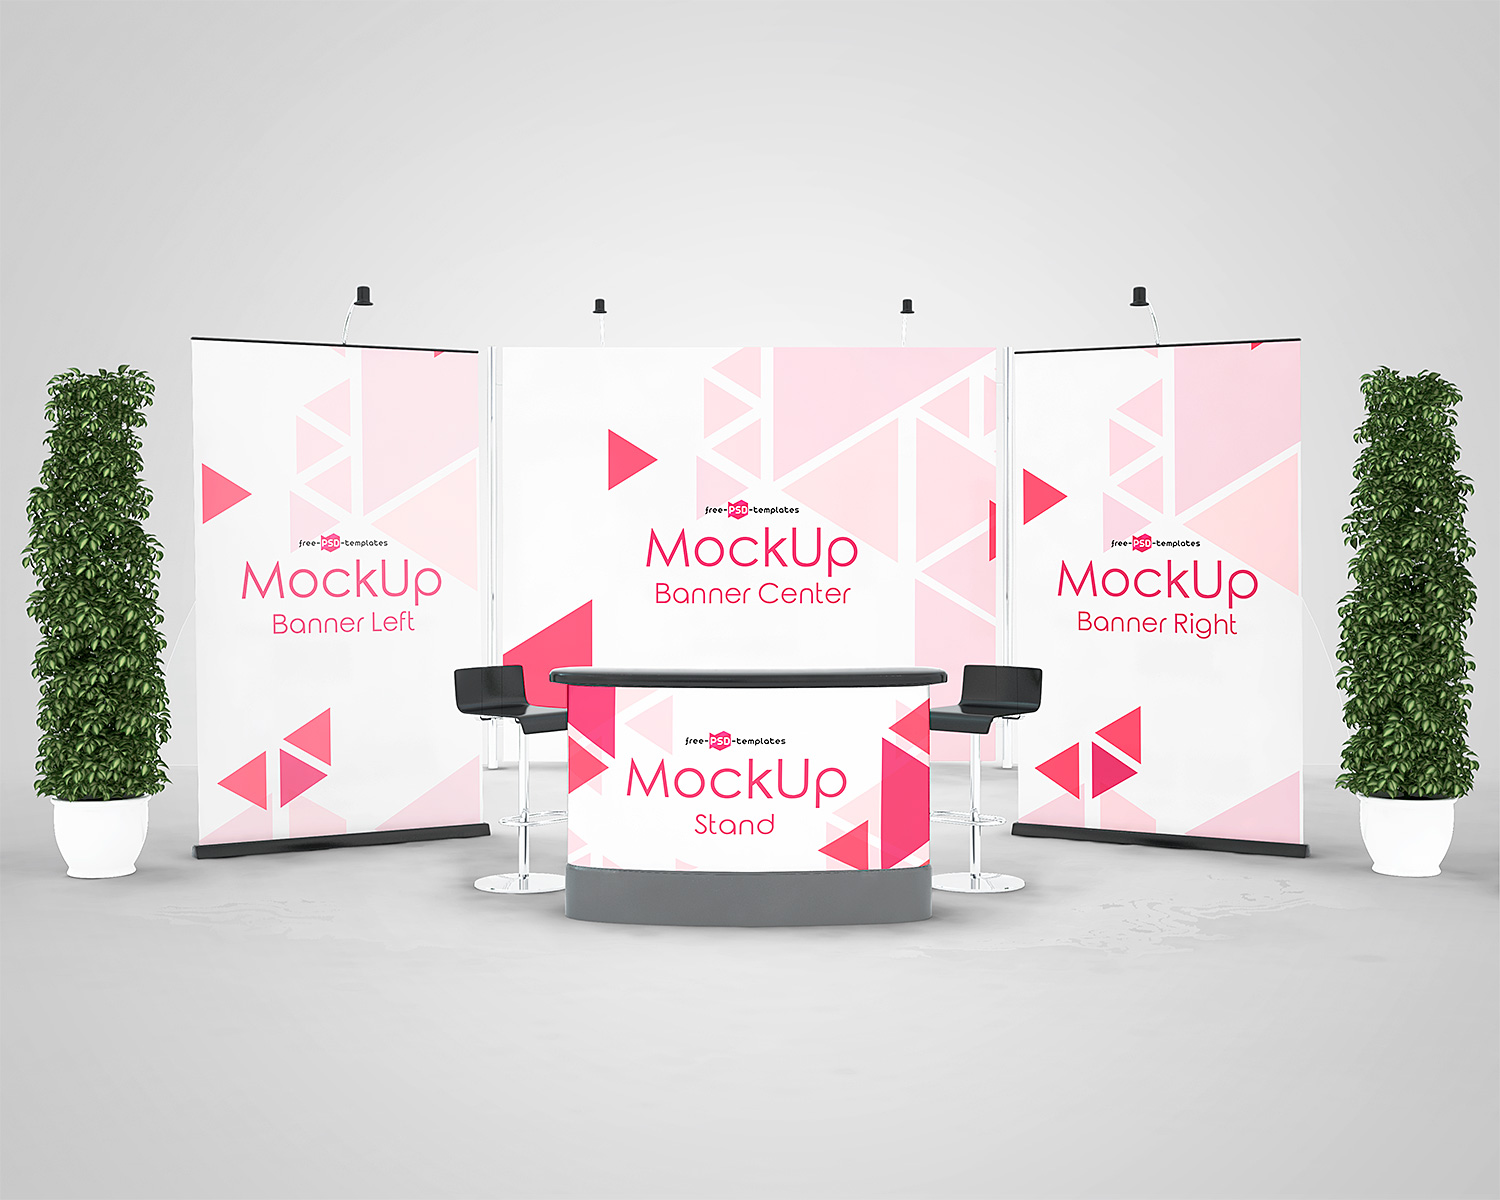 Exhibition Stand Mockup Free Psd : Outdoor advertising free mockup part